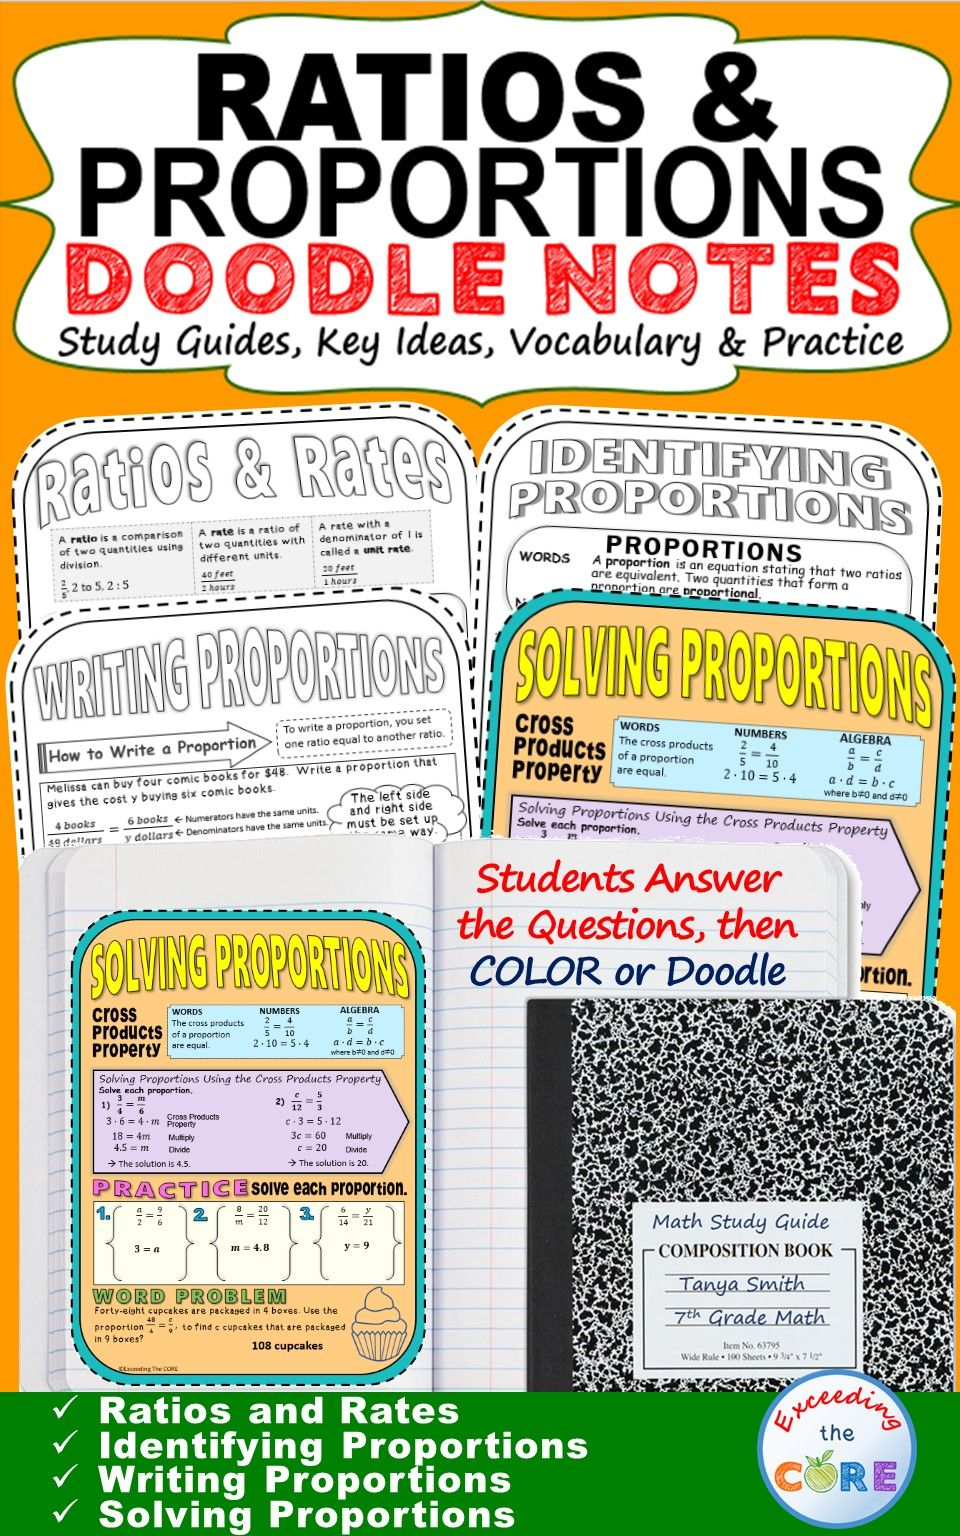 Workbooks rates and proportions worksheets : RATIOS and PROPORTIONS Doodle Notes (Study Guides) | Common cores ...